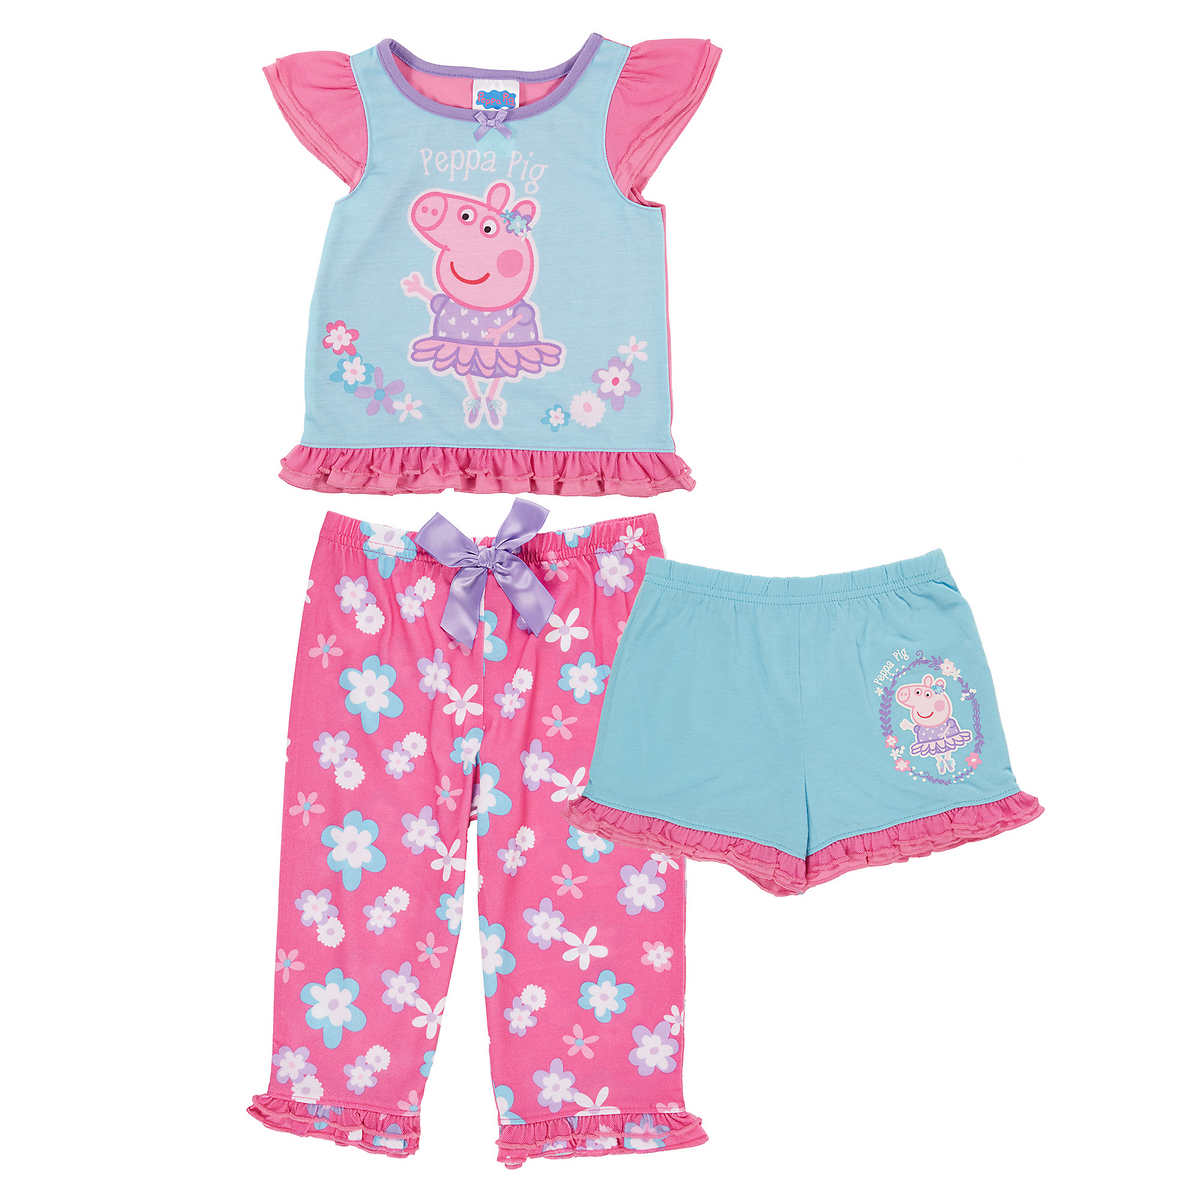 sleepwear character kids 3 piece pajama set peppa pig